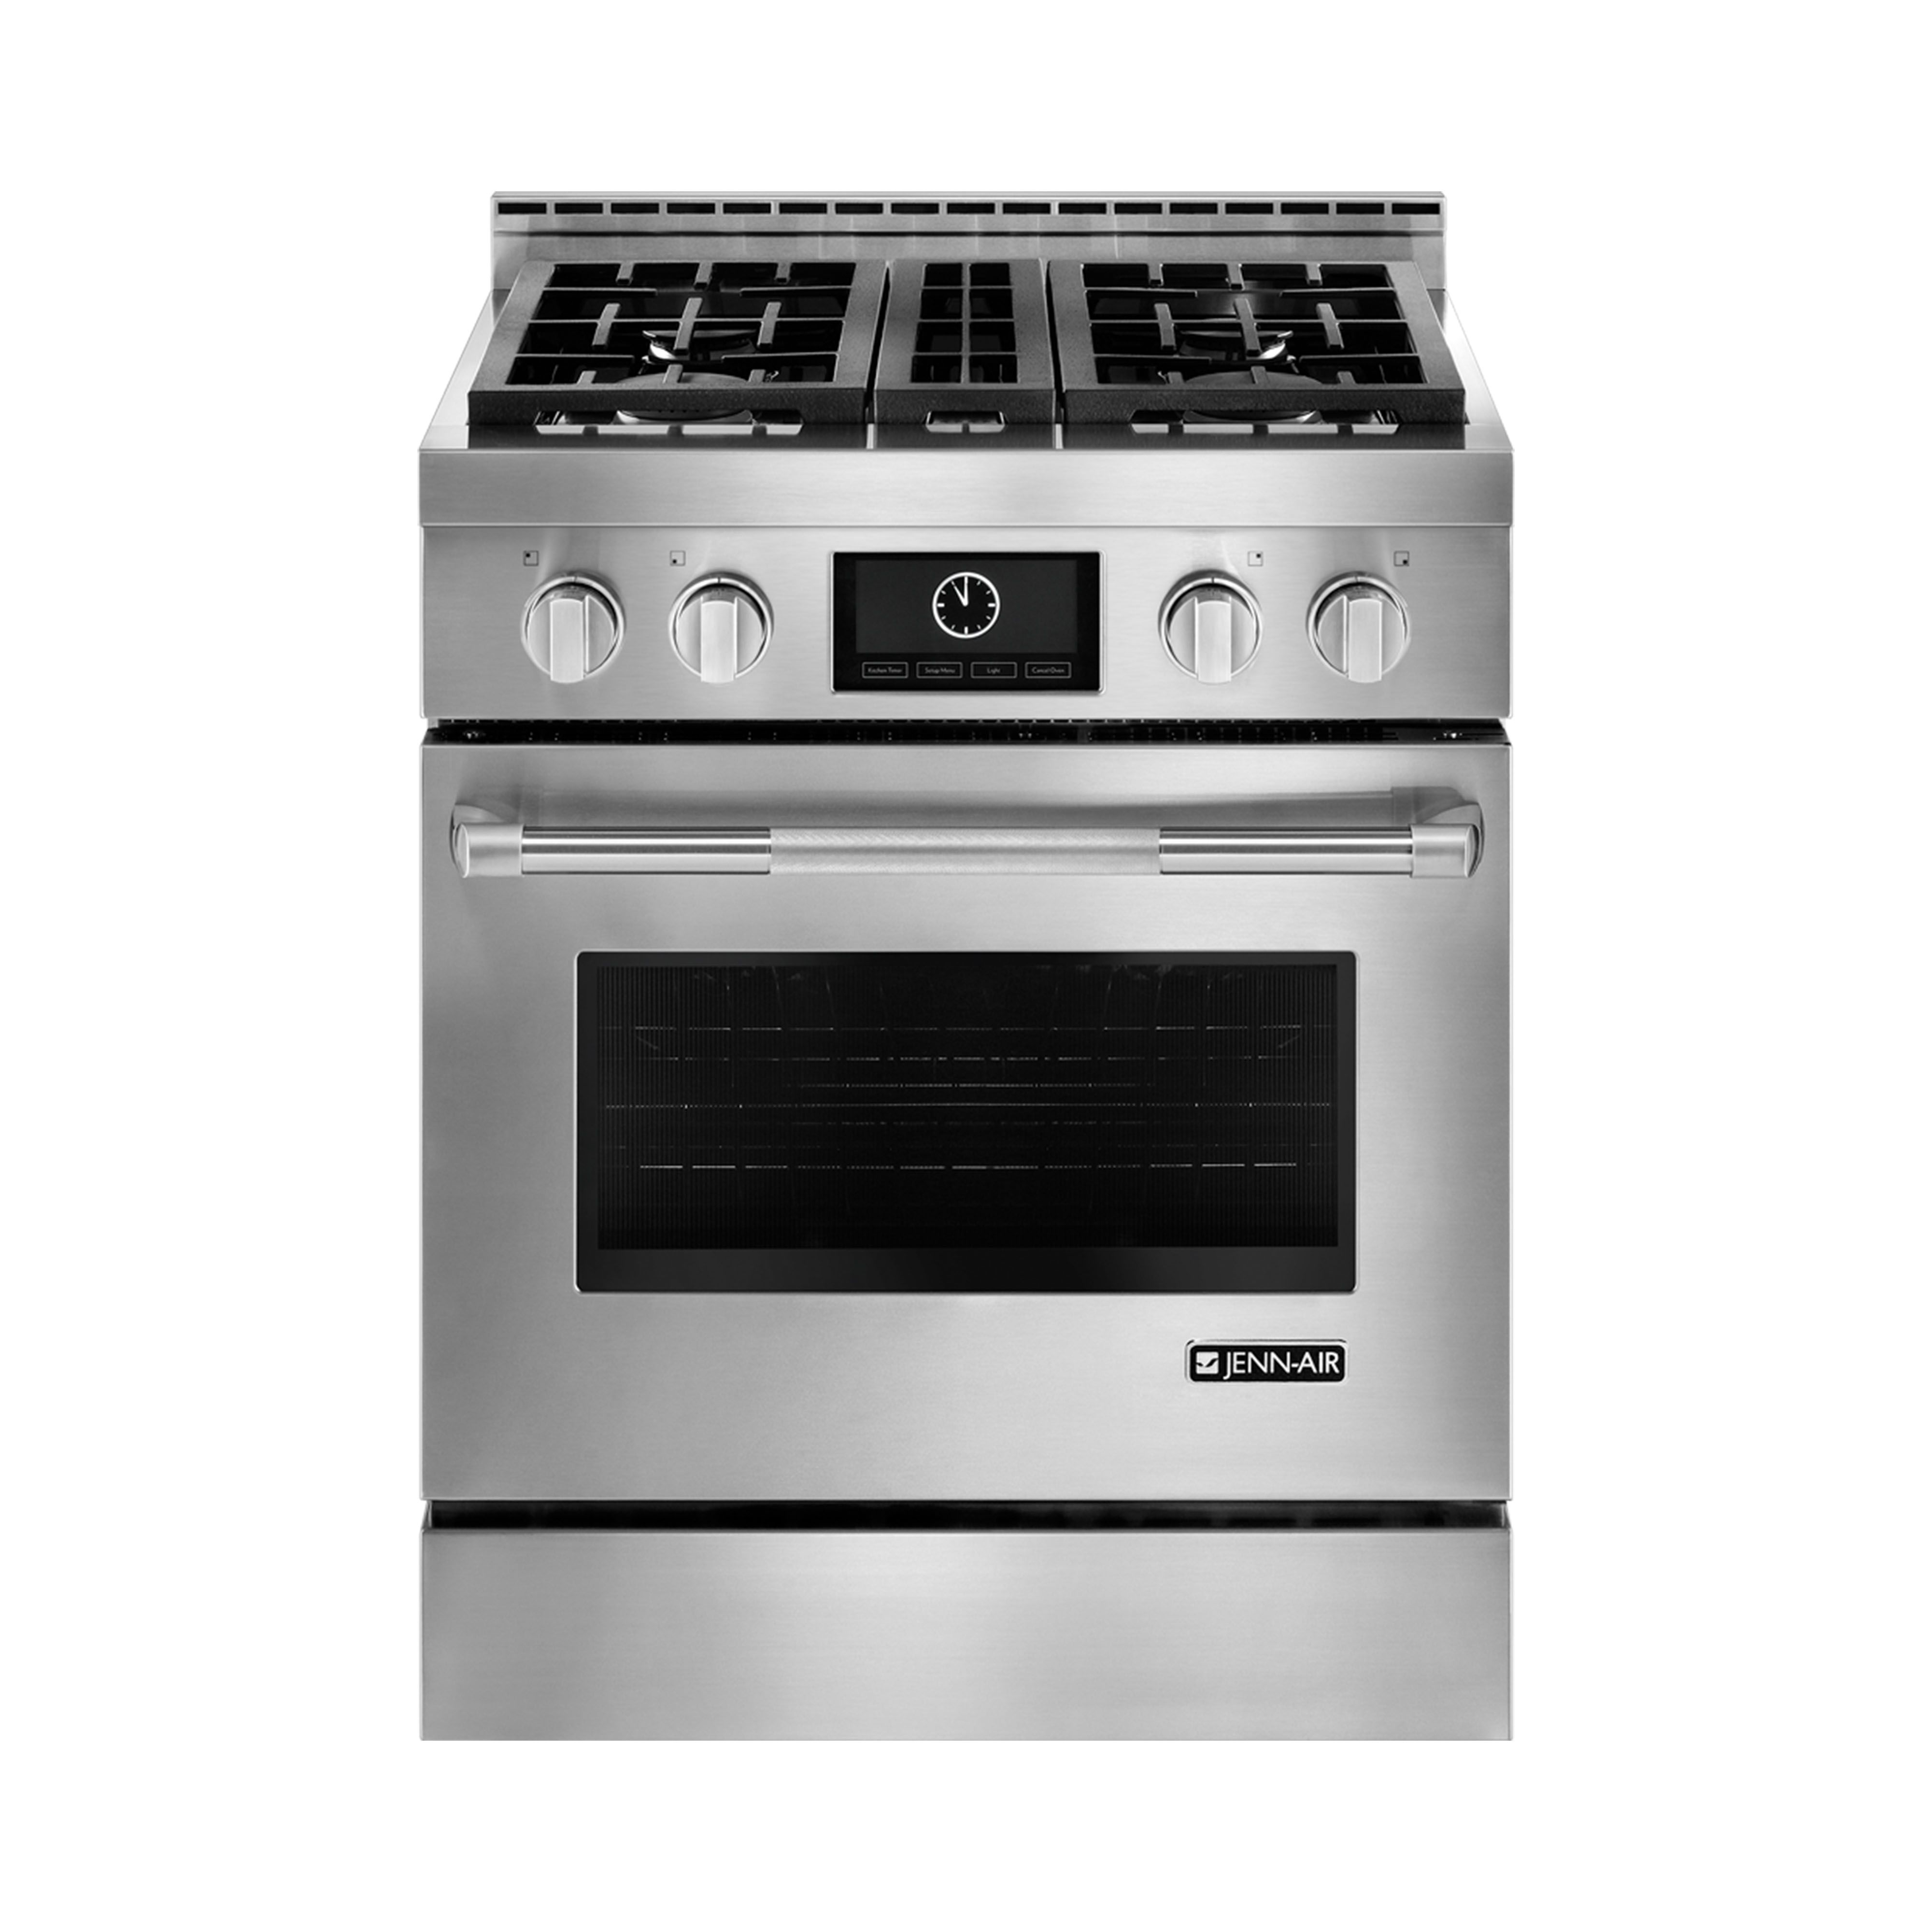 Jenn Air Pro Style Gas Range With Multimode Convection Jgrp430wp Review Price And Features